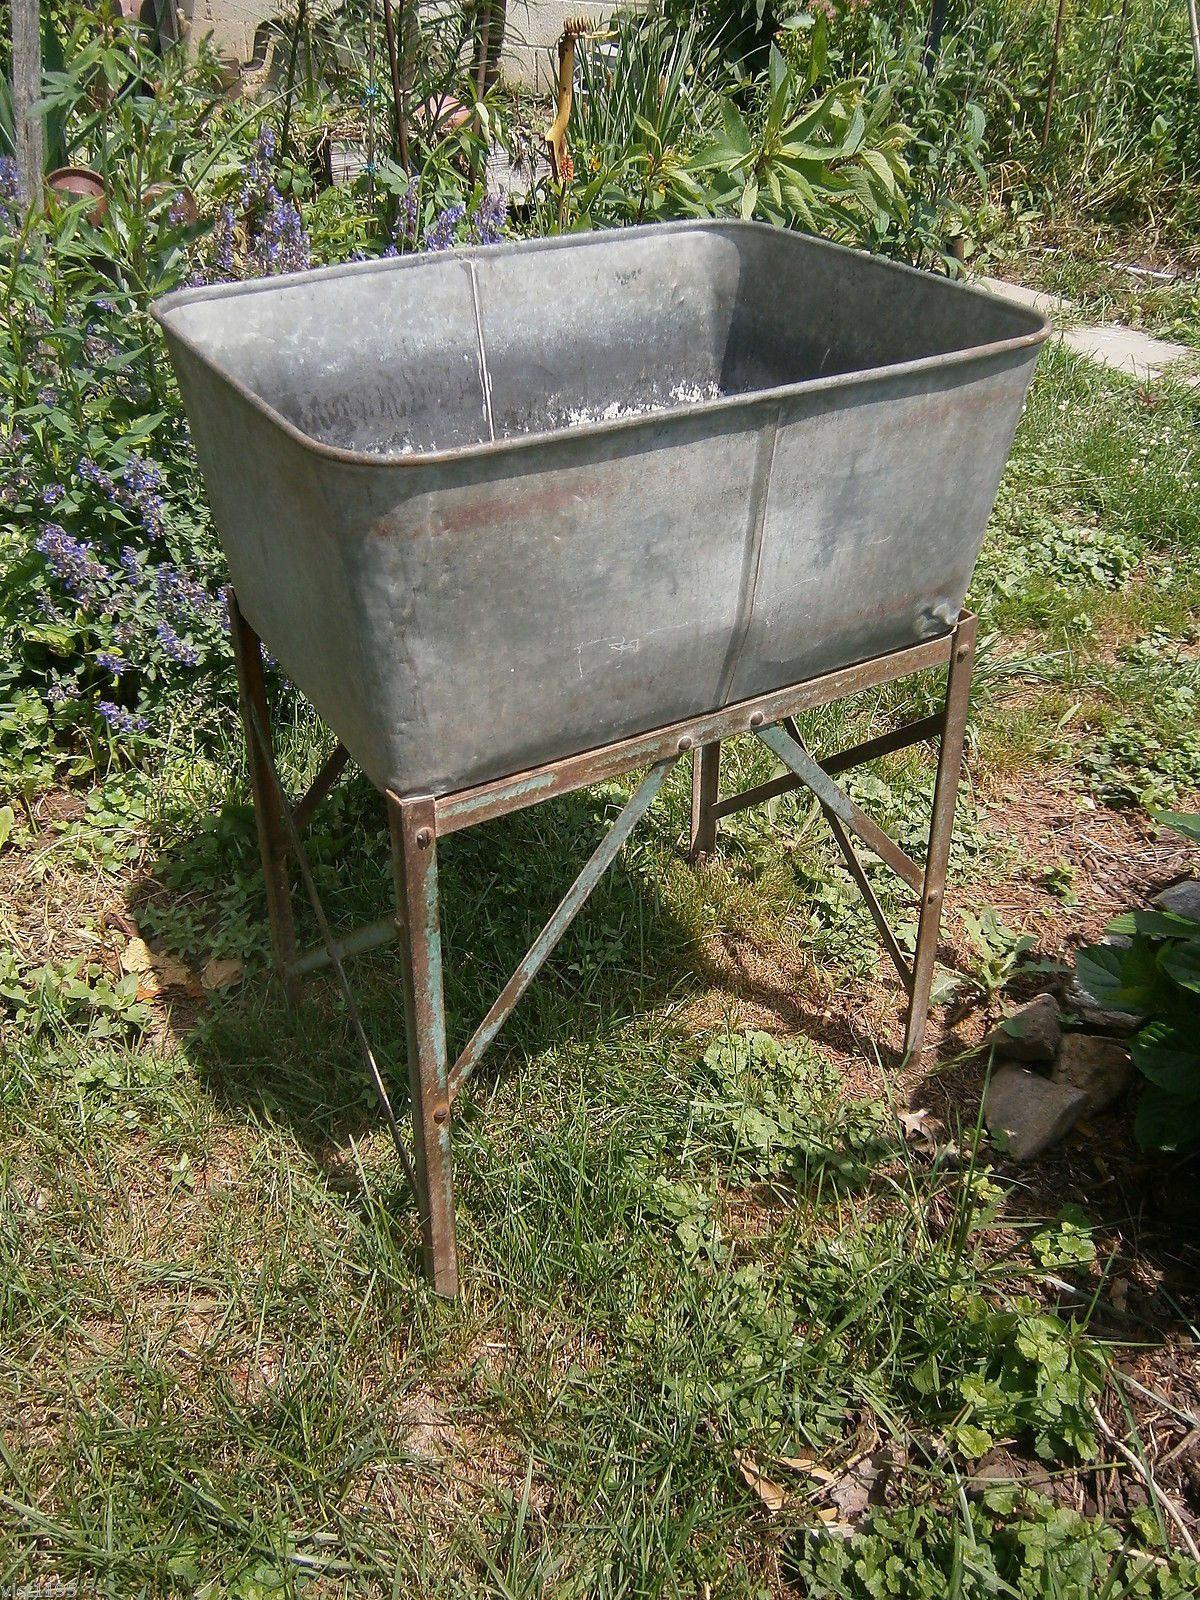 Early Galvanized Large Single Rectangular Wash Tub With Stand Ebay Wash Tubs Galvanized Wash Tub Rectangular